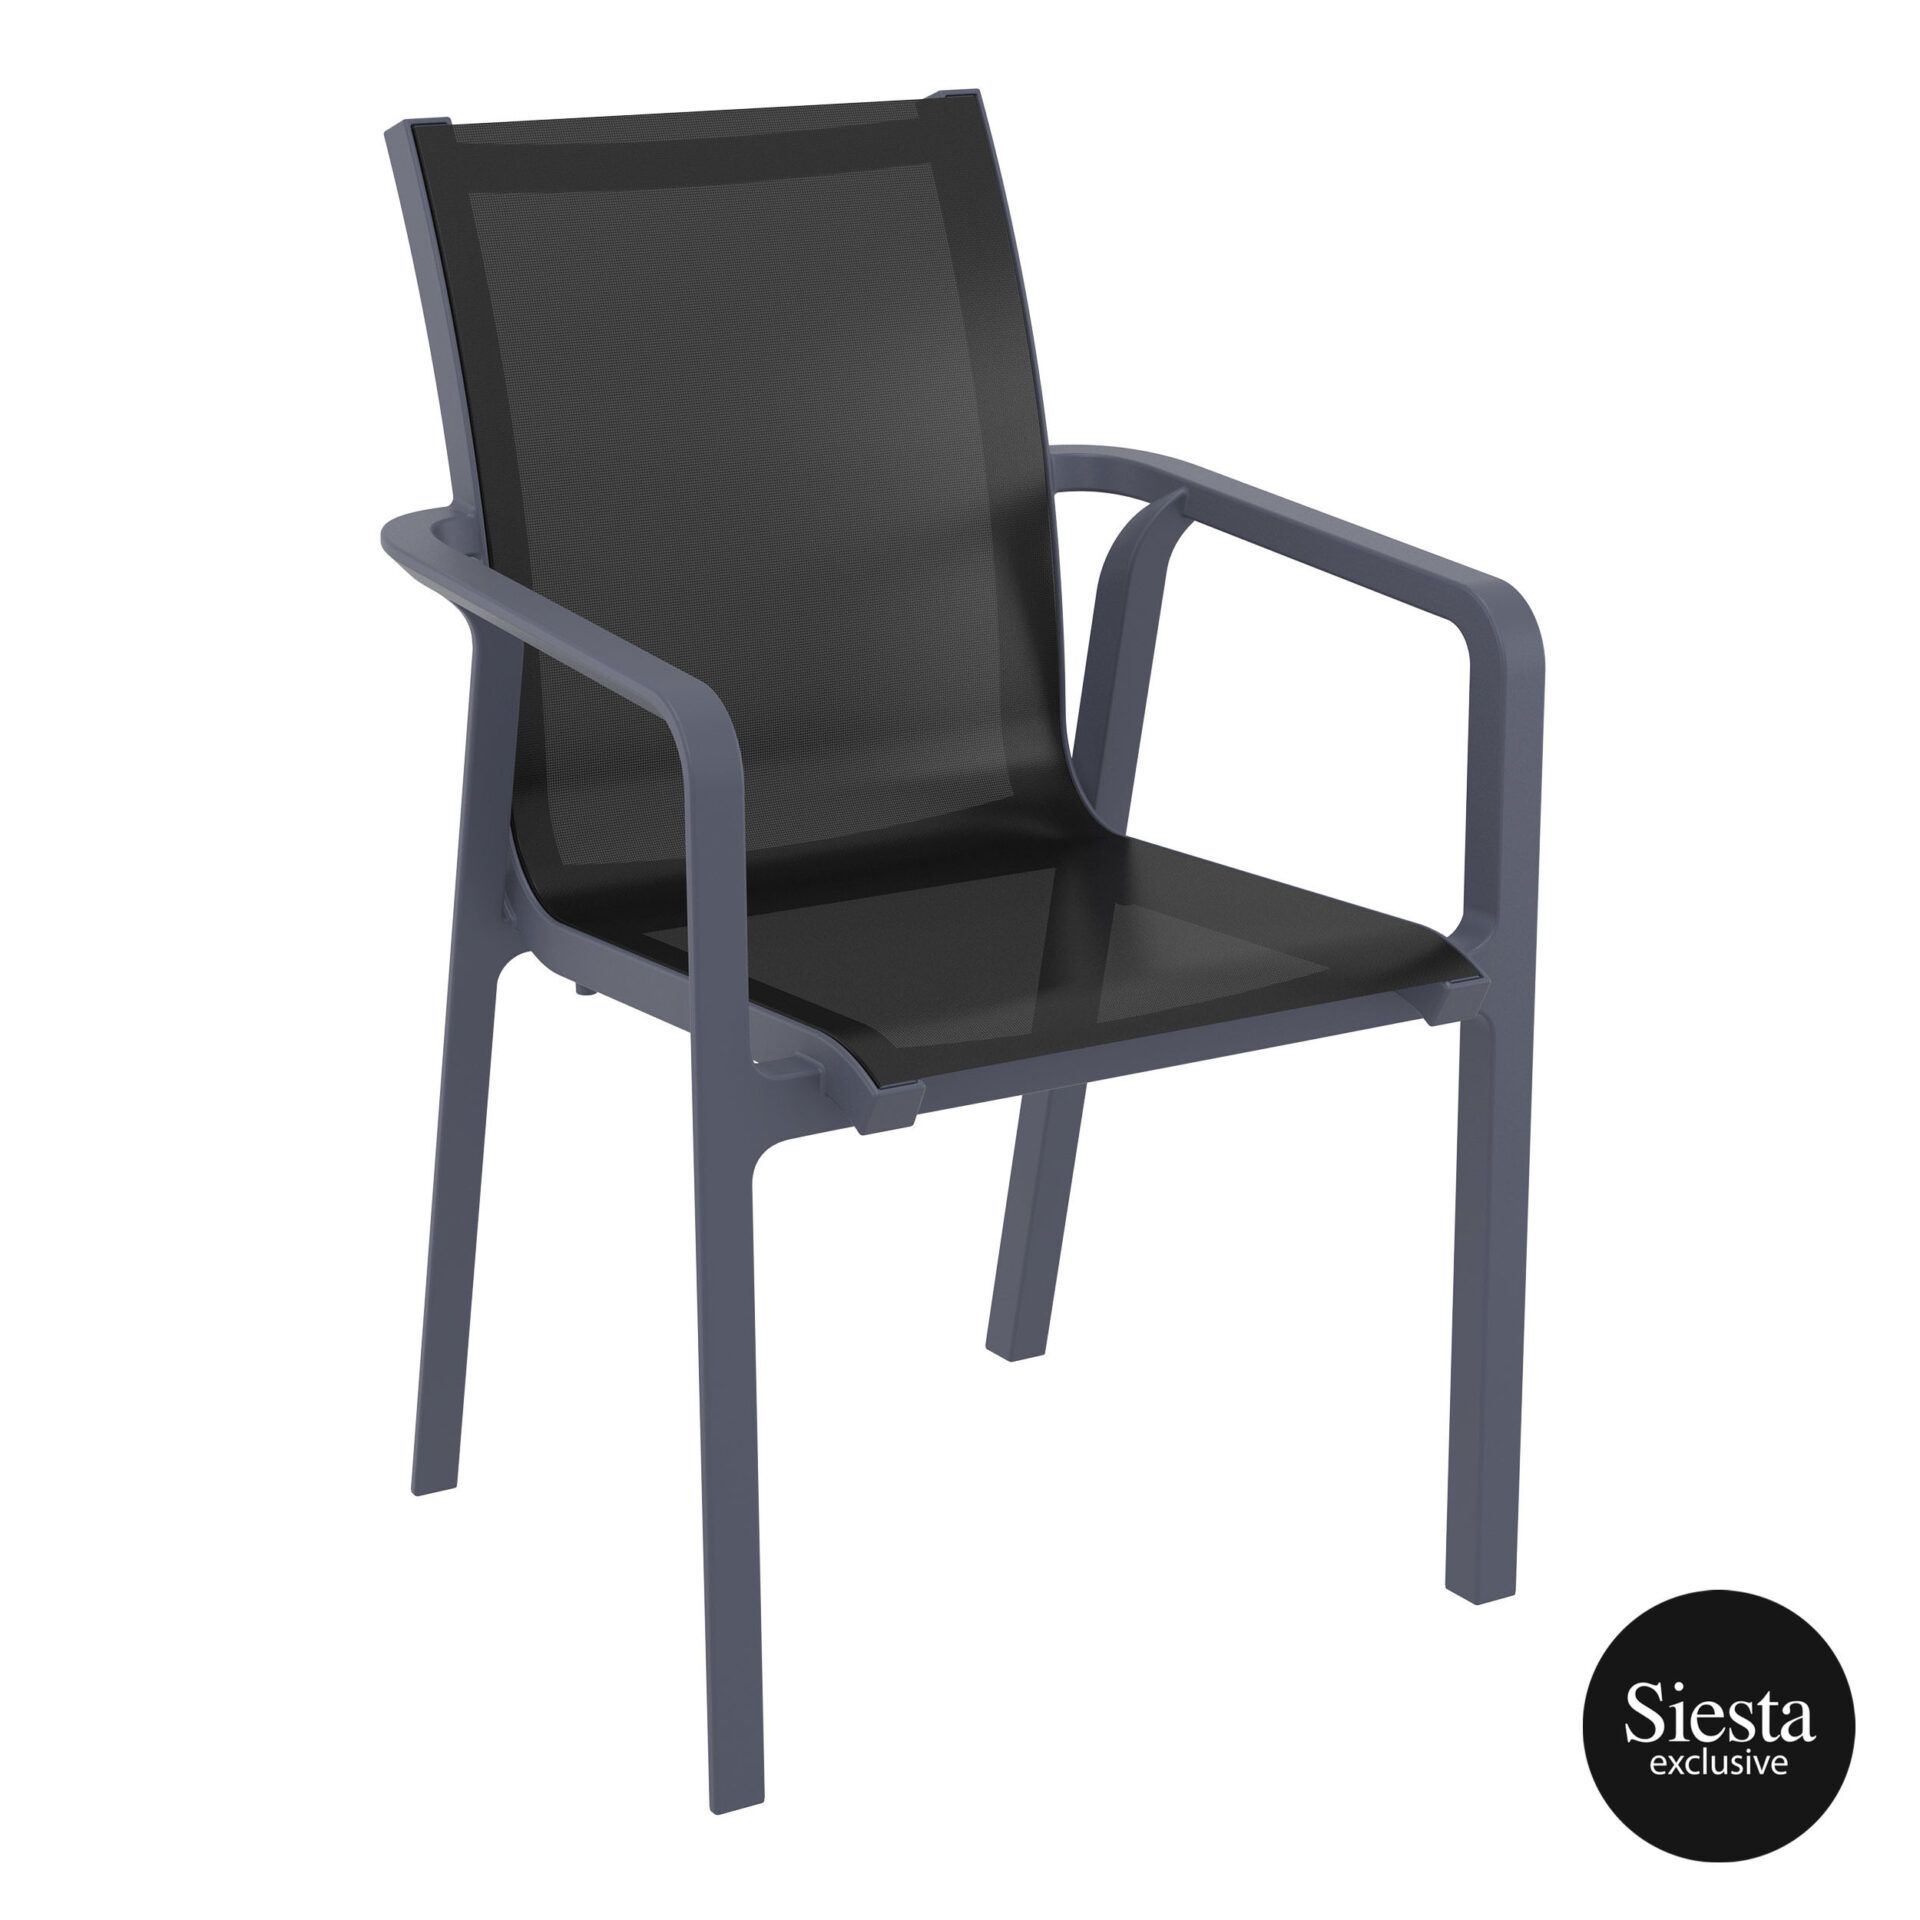 Outdoor Seating Pacific Armchair darkgrey black front side